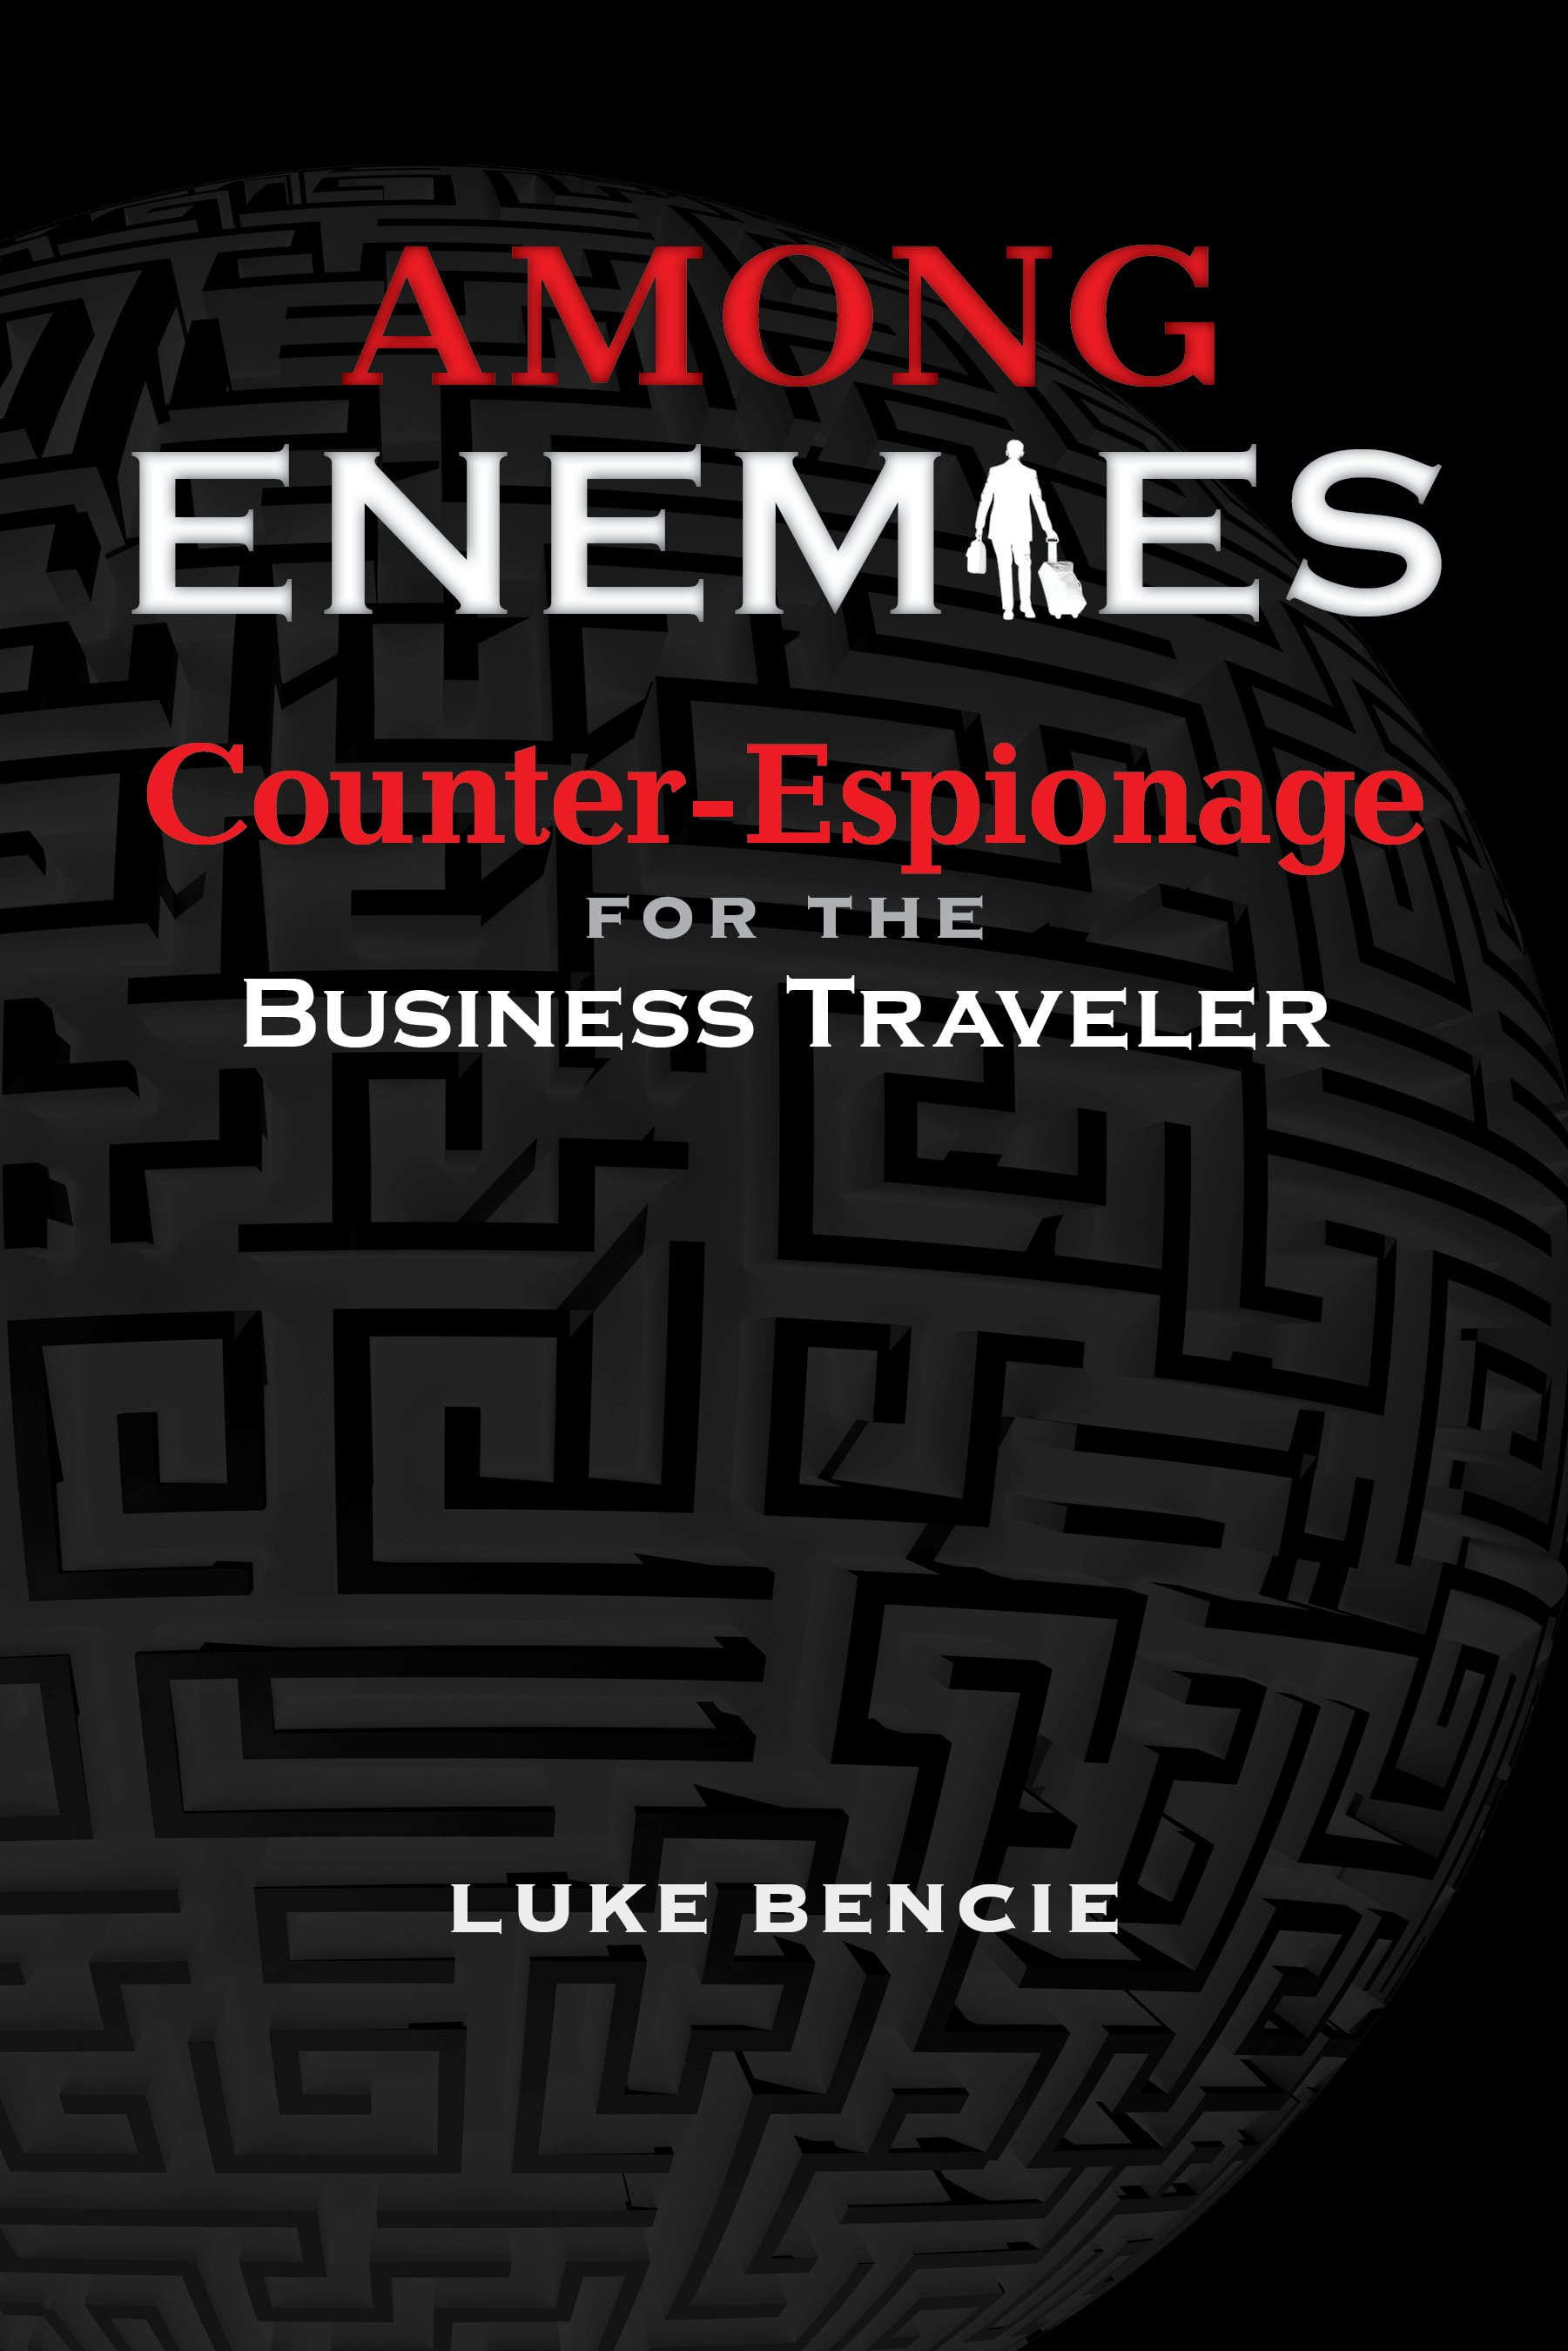 Among Enemies:  Counter-Espionage for Business Travelers